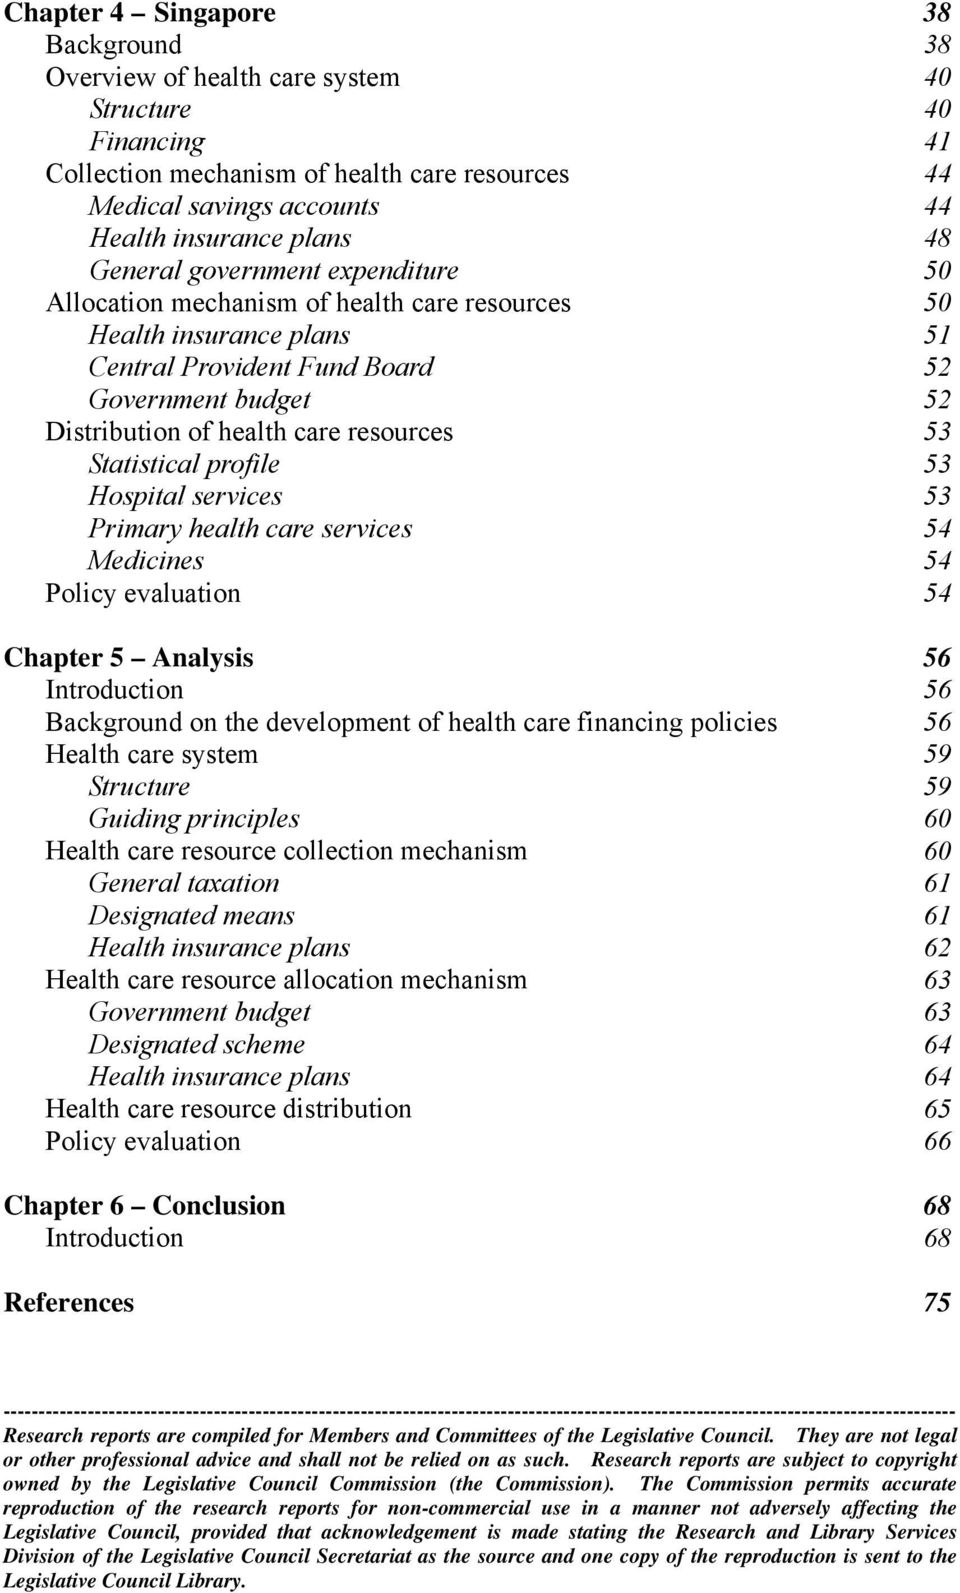 53 Statistical profile 53 Hospital services 53 Primary health care services 54 Medicines 54 Policy evaluation 54 Chapter 5 Analysis 56 Introduction 56 Background on the development of health care